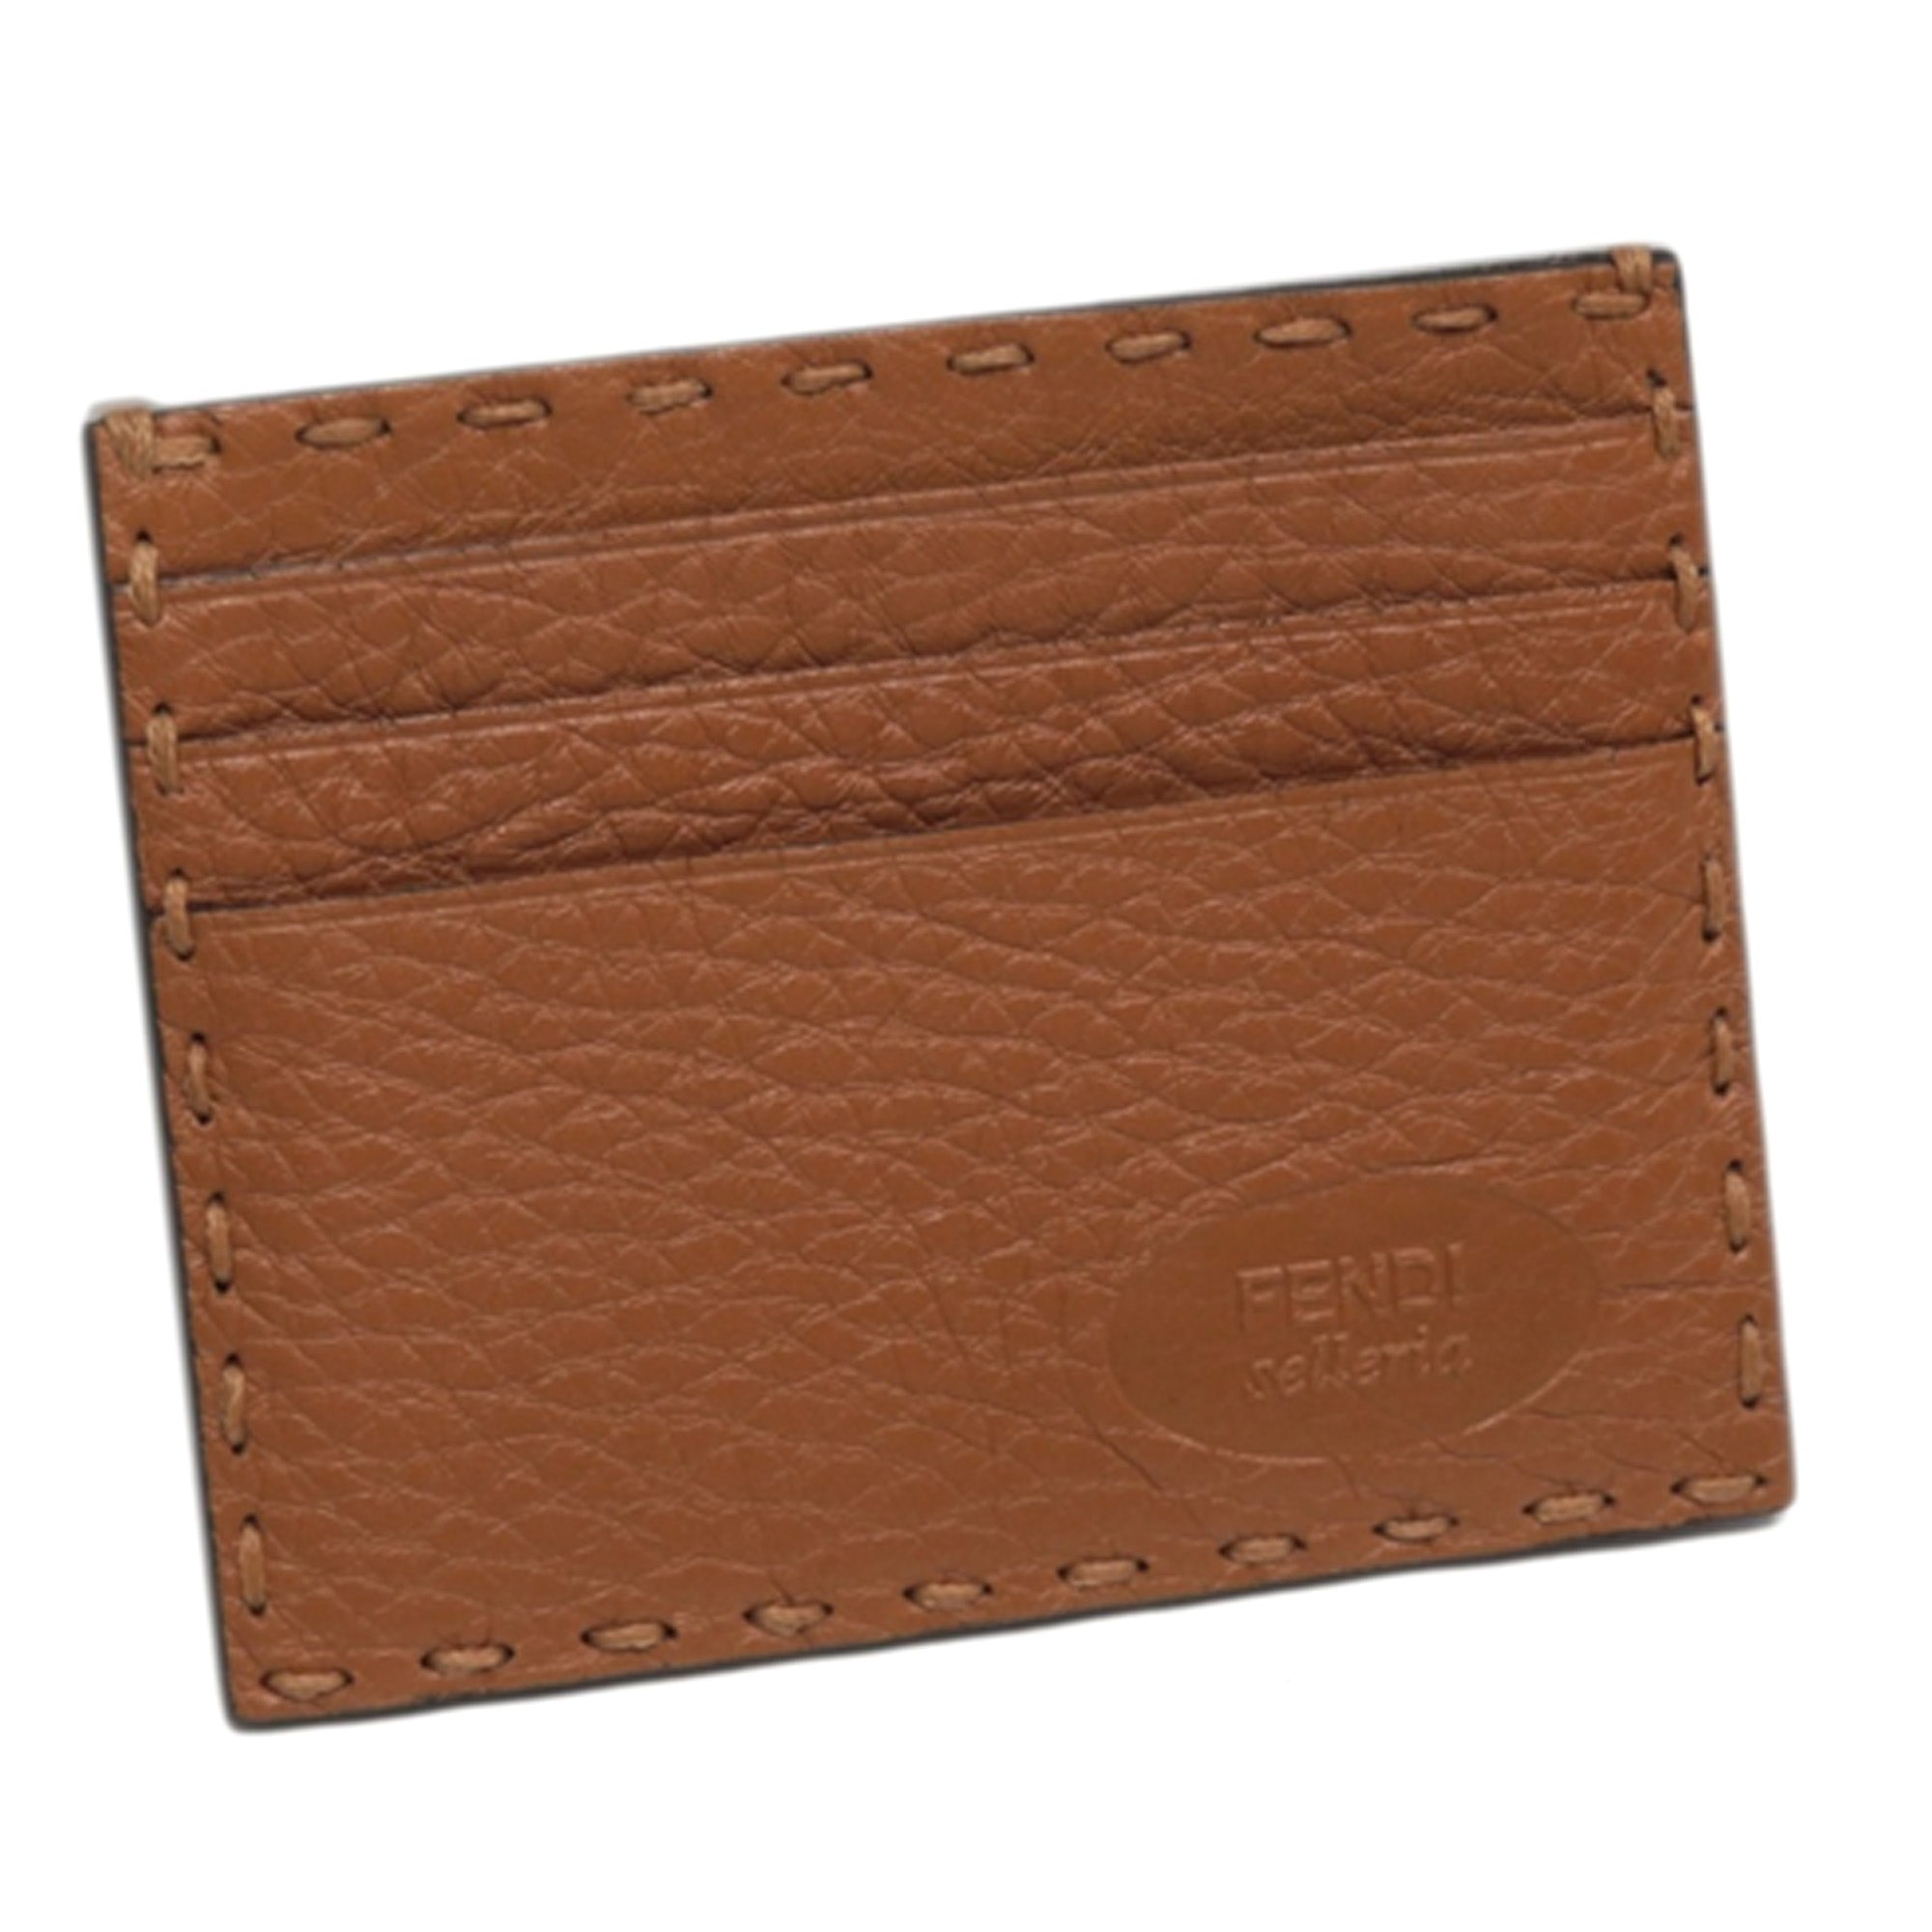 Fendi Brown Selleria Leather Card Holder